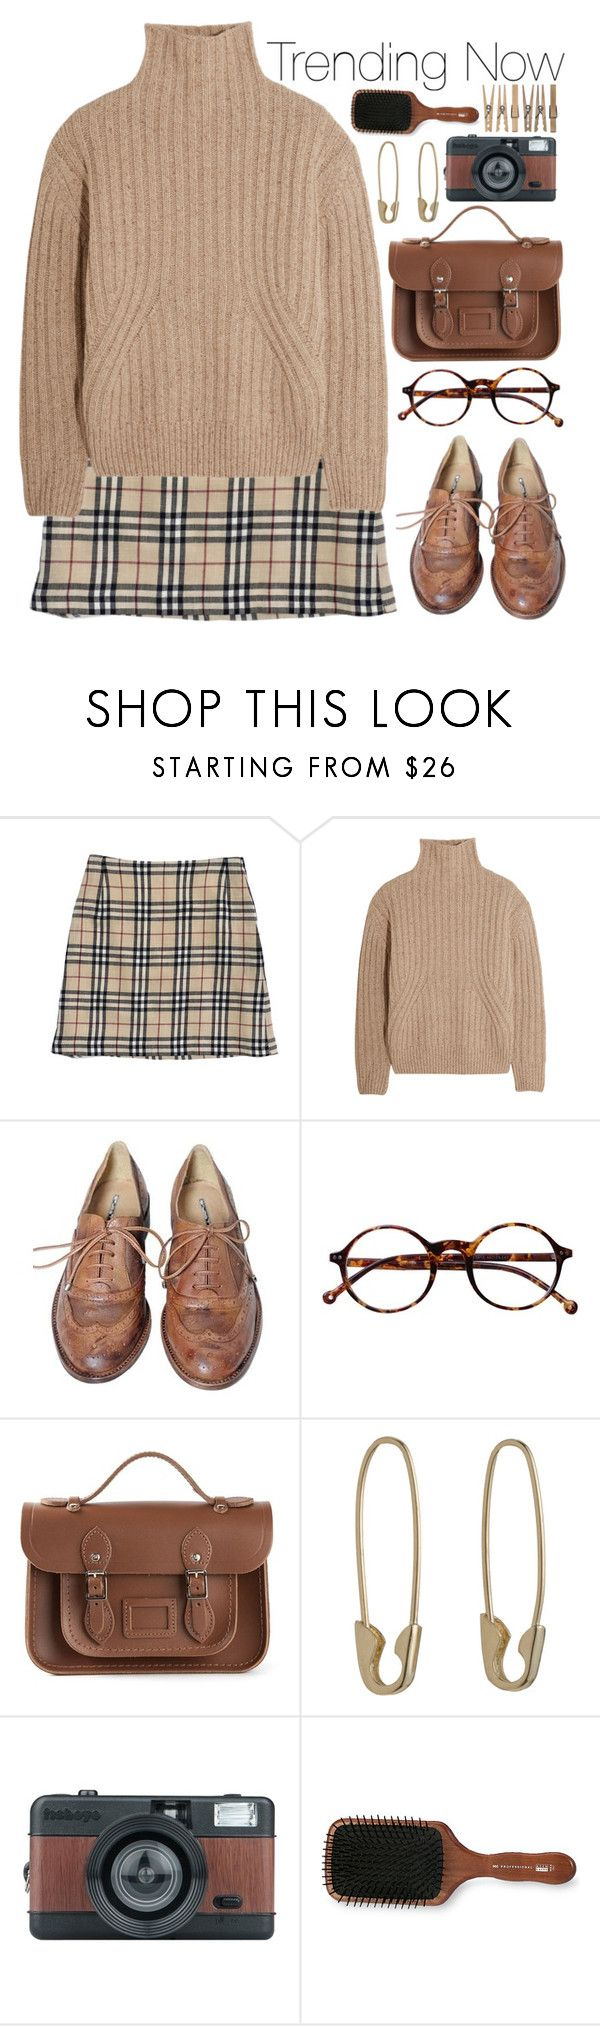 """Chunky turtlenecks & plaid skirts"" by annaclaraalvez ❤ liked on Polyvore featuring Burberry, Totême, Studio TMLS, Retrò, The Cambridge Satchel Company, Loren Stewart and Acca Kappa"